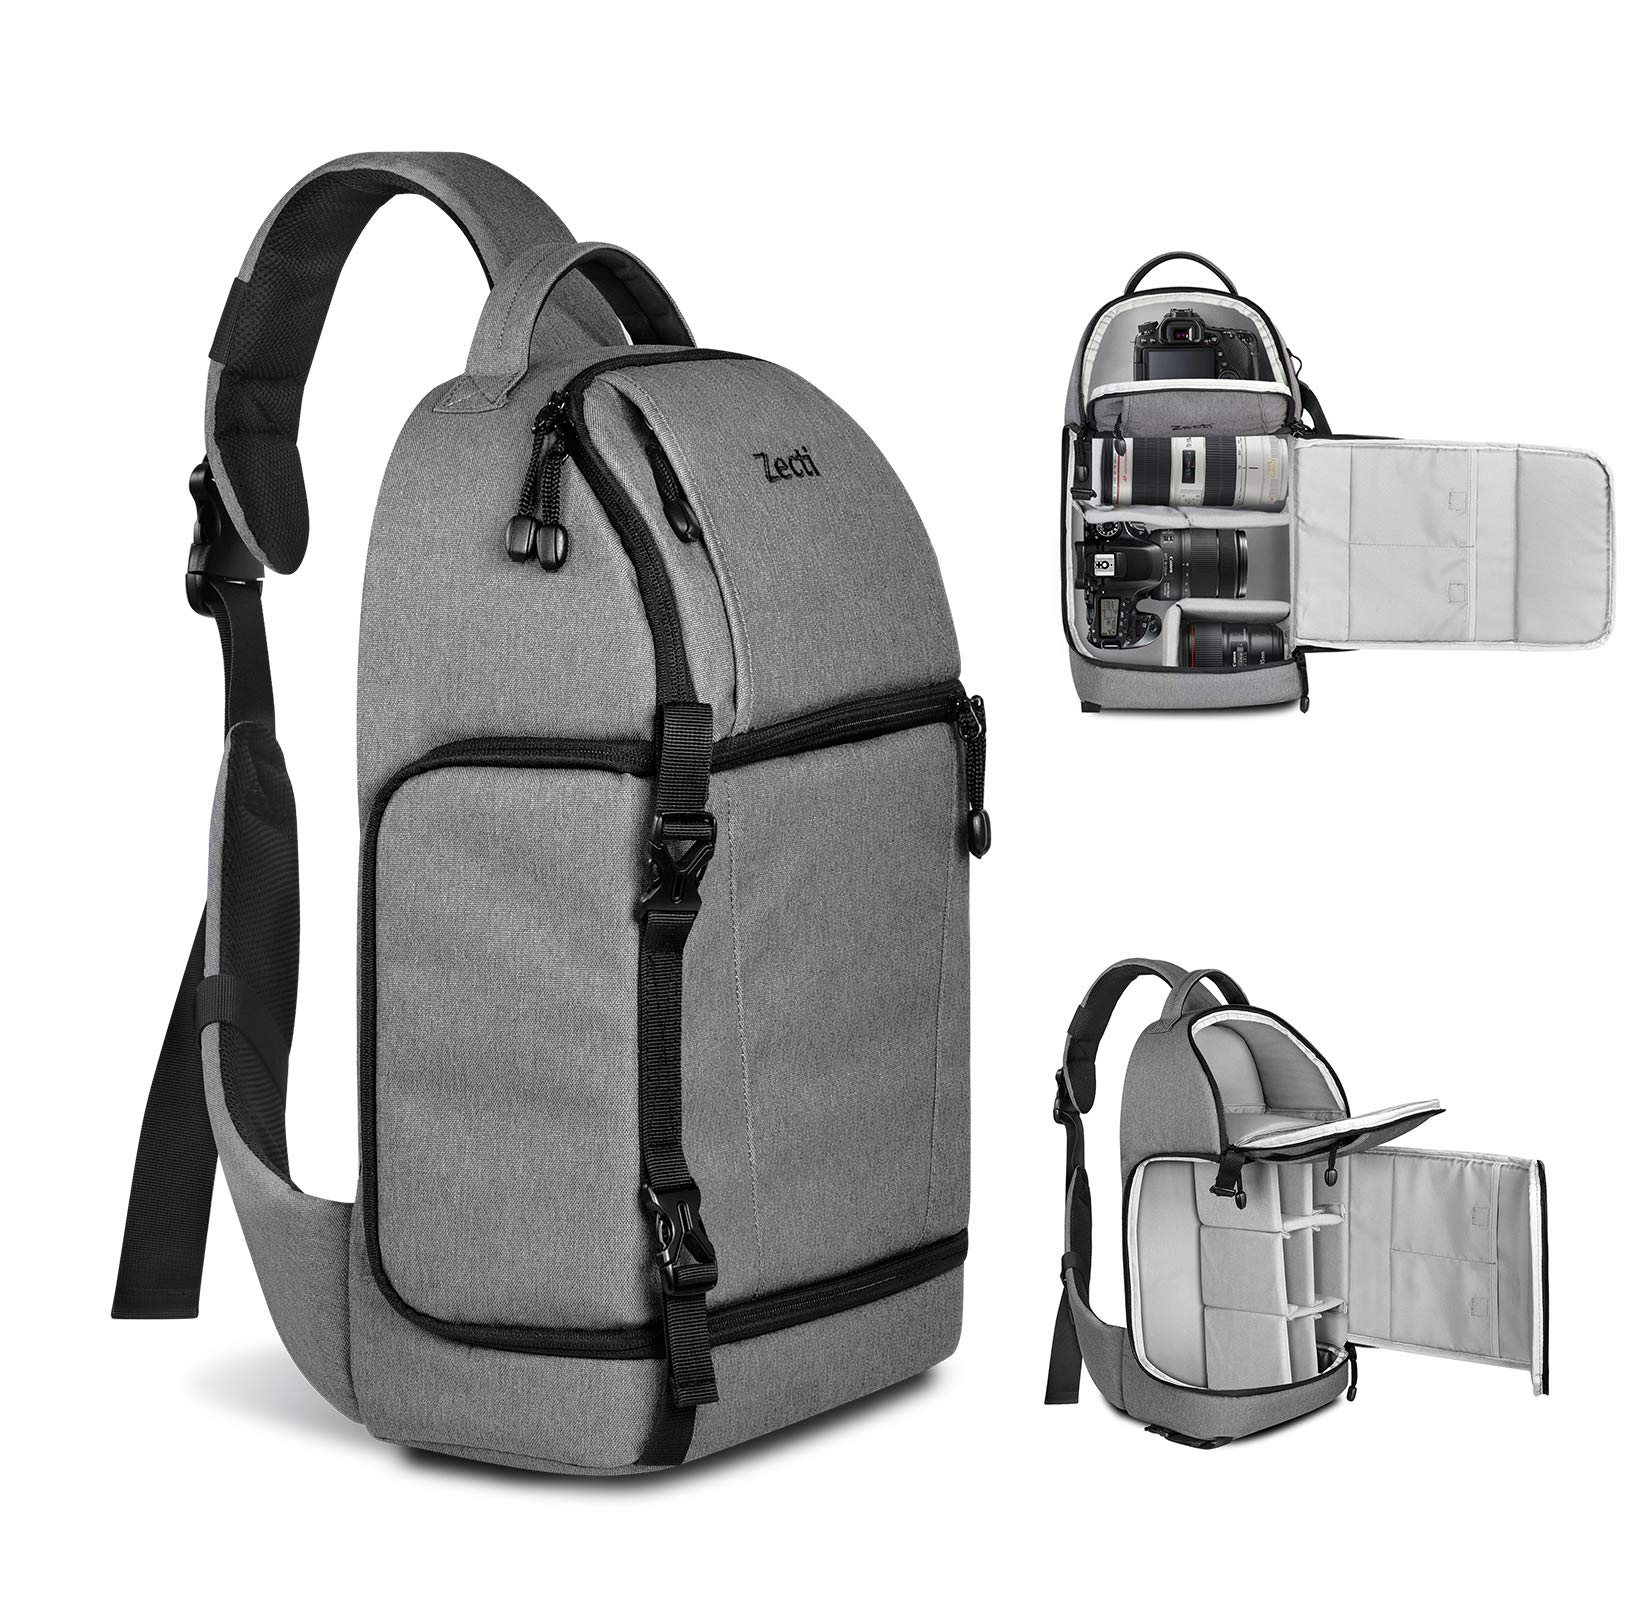 Zecti Sling Camera Bag for DSLR Camera (Canon Nikon Sony Pentax Olympus and etc.) Gray by Zecti